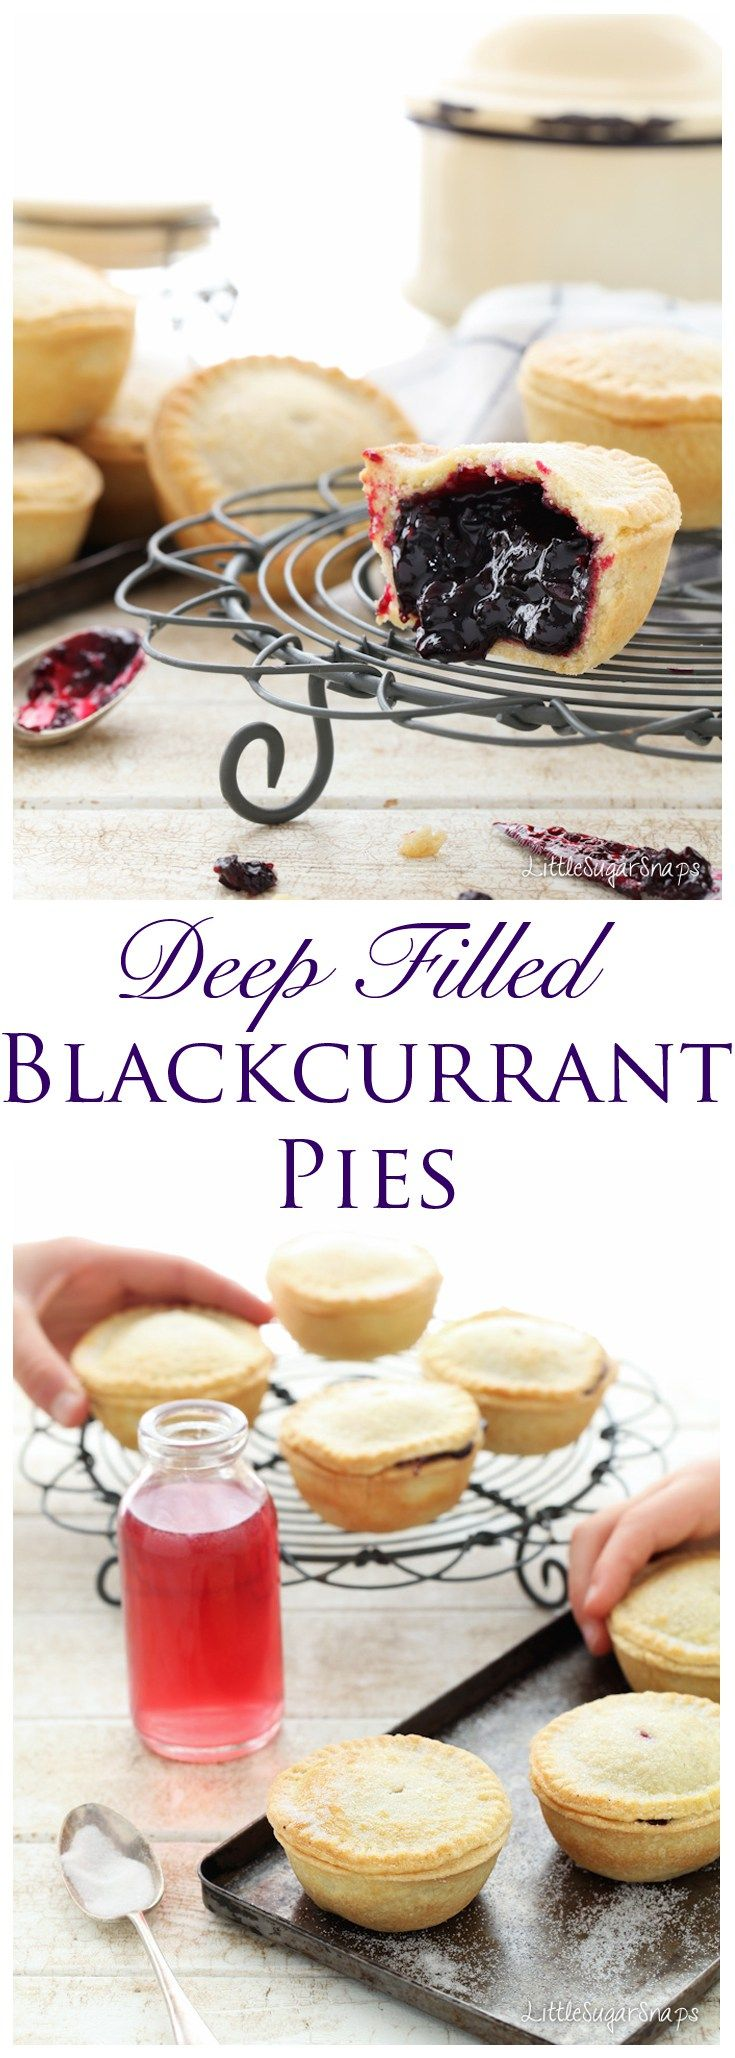 Deep Filled Blackcurrant Pies are the perfect marriage of sweet, tart jammy…